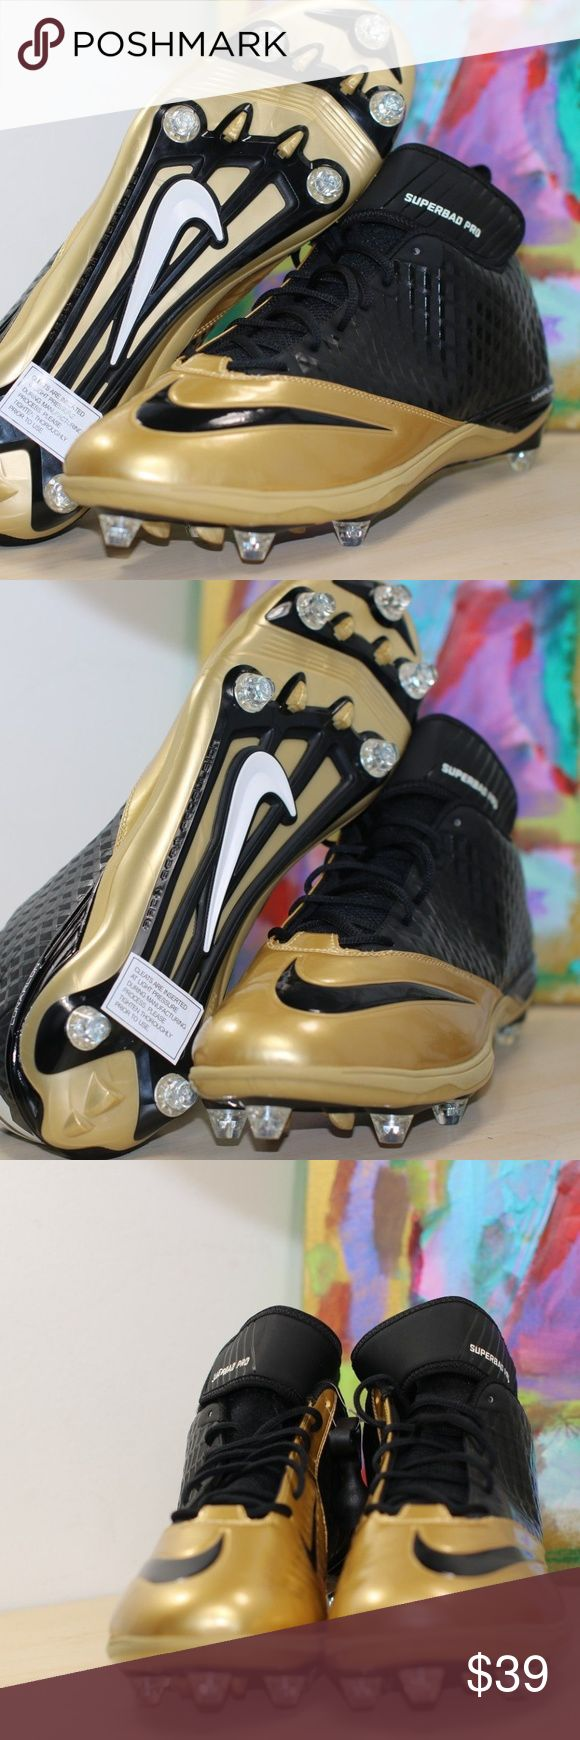 Nike Lunar Superbad Pro TD Mid Mens Football Cleat Nike Lunar Superbad Pro TD Mid Mens Football Cleats 544762 020 Gold Black Sz 16  New without box Thank you for viewing our posh store if you have any questions please do not hesitate to ask questions about the items you want to buy. We are constantly working on improving our customer service and overall satisfaction. Follow our posh store for updates and deals, thank you for supporting us. Nike Shoes Athletic Shoes